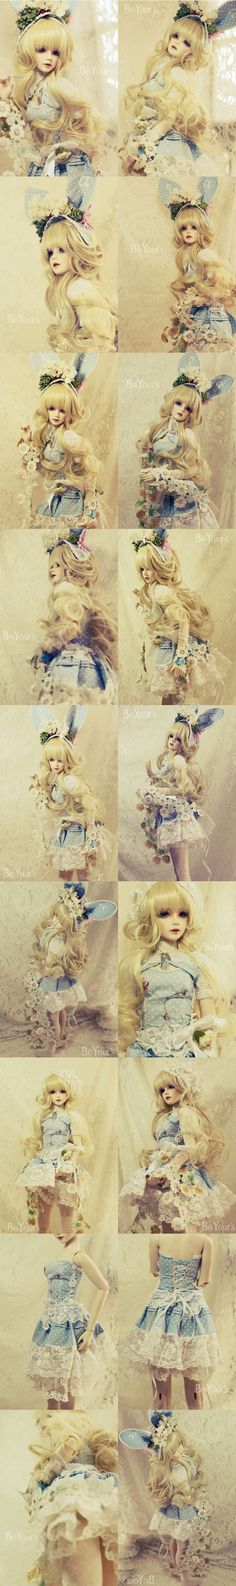 BJD Kirara 60.5cm Girl Ball-jointed doll_60~62cm dolls_Beyours_DOLL_Ball Jointed Dolls (BJD) company-Legenddoll